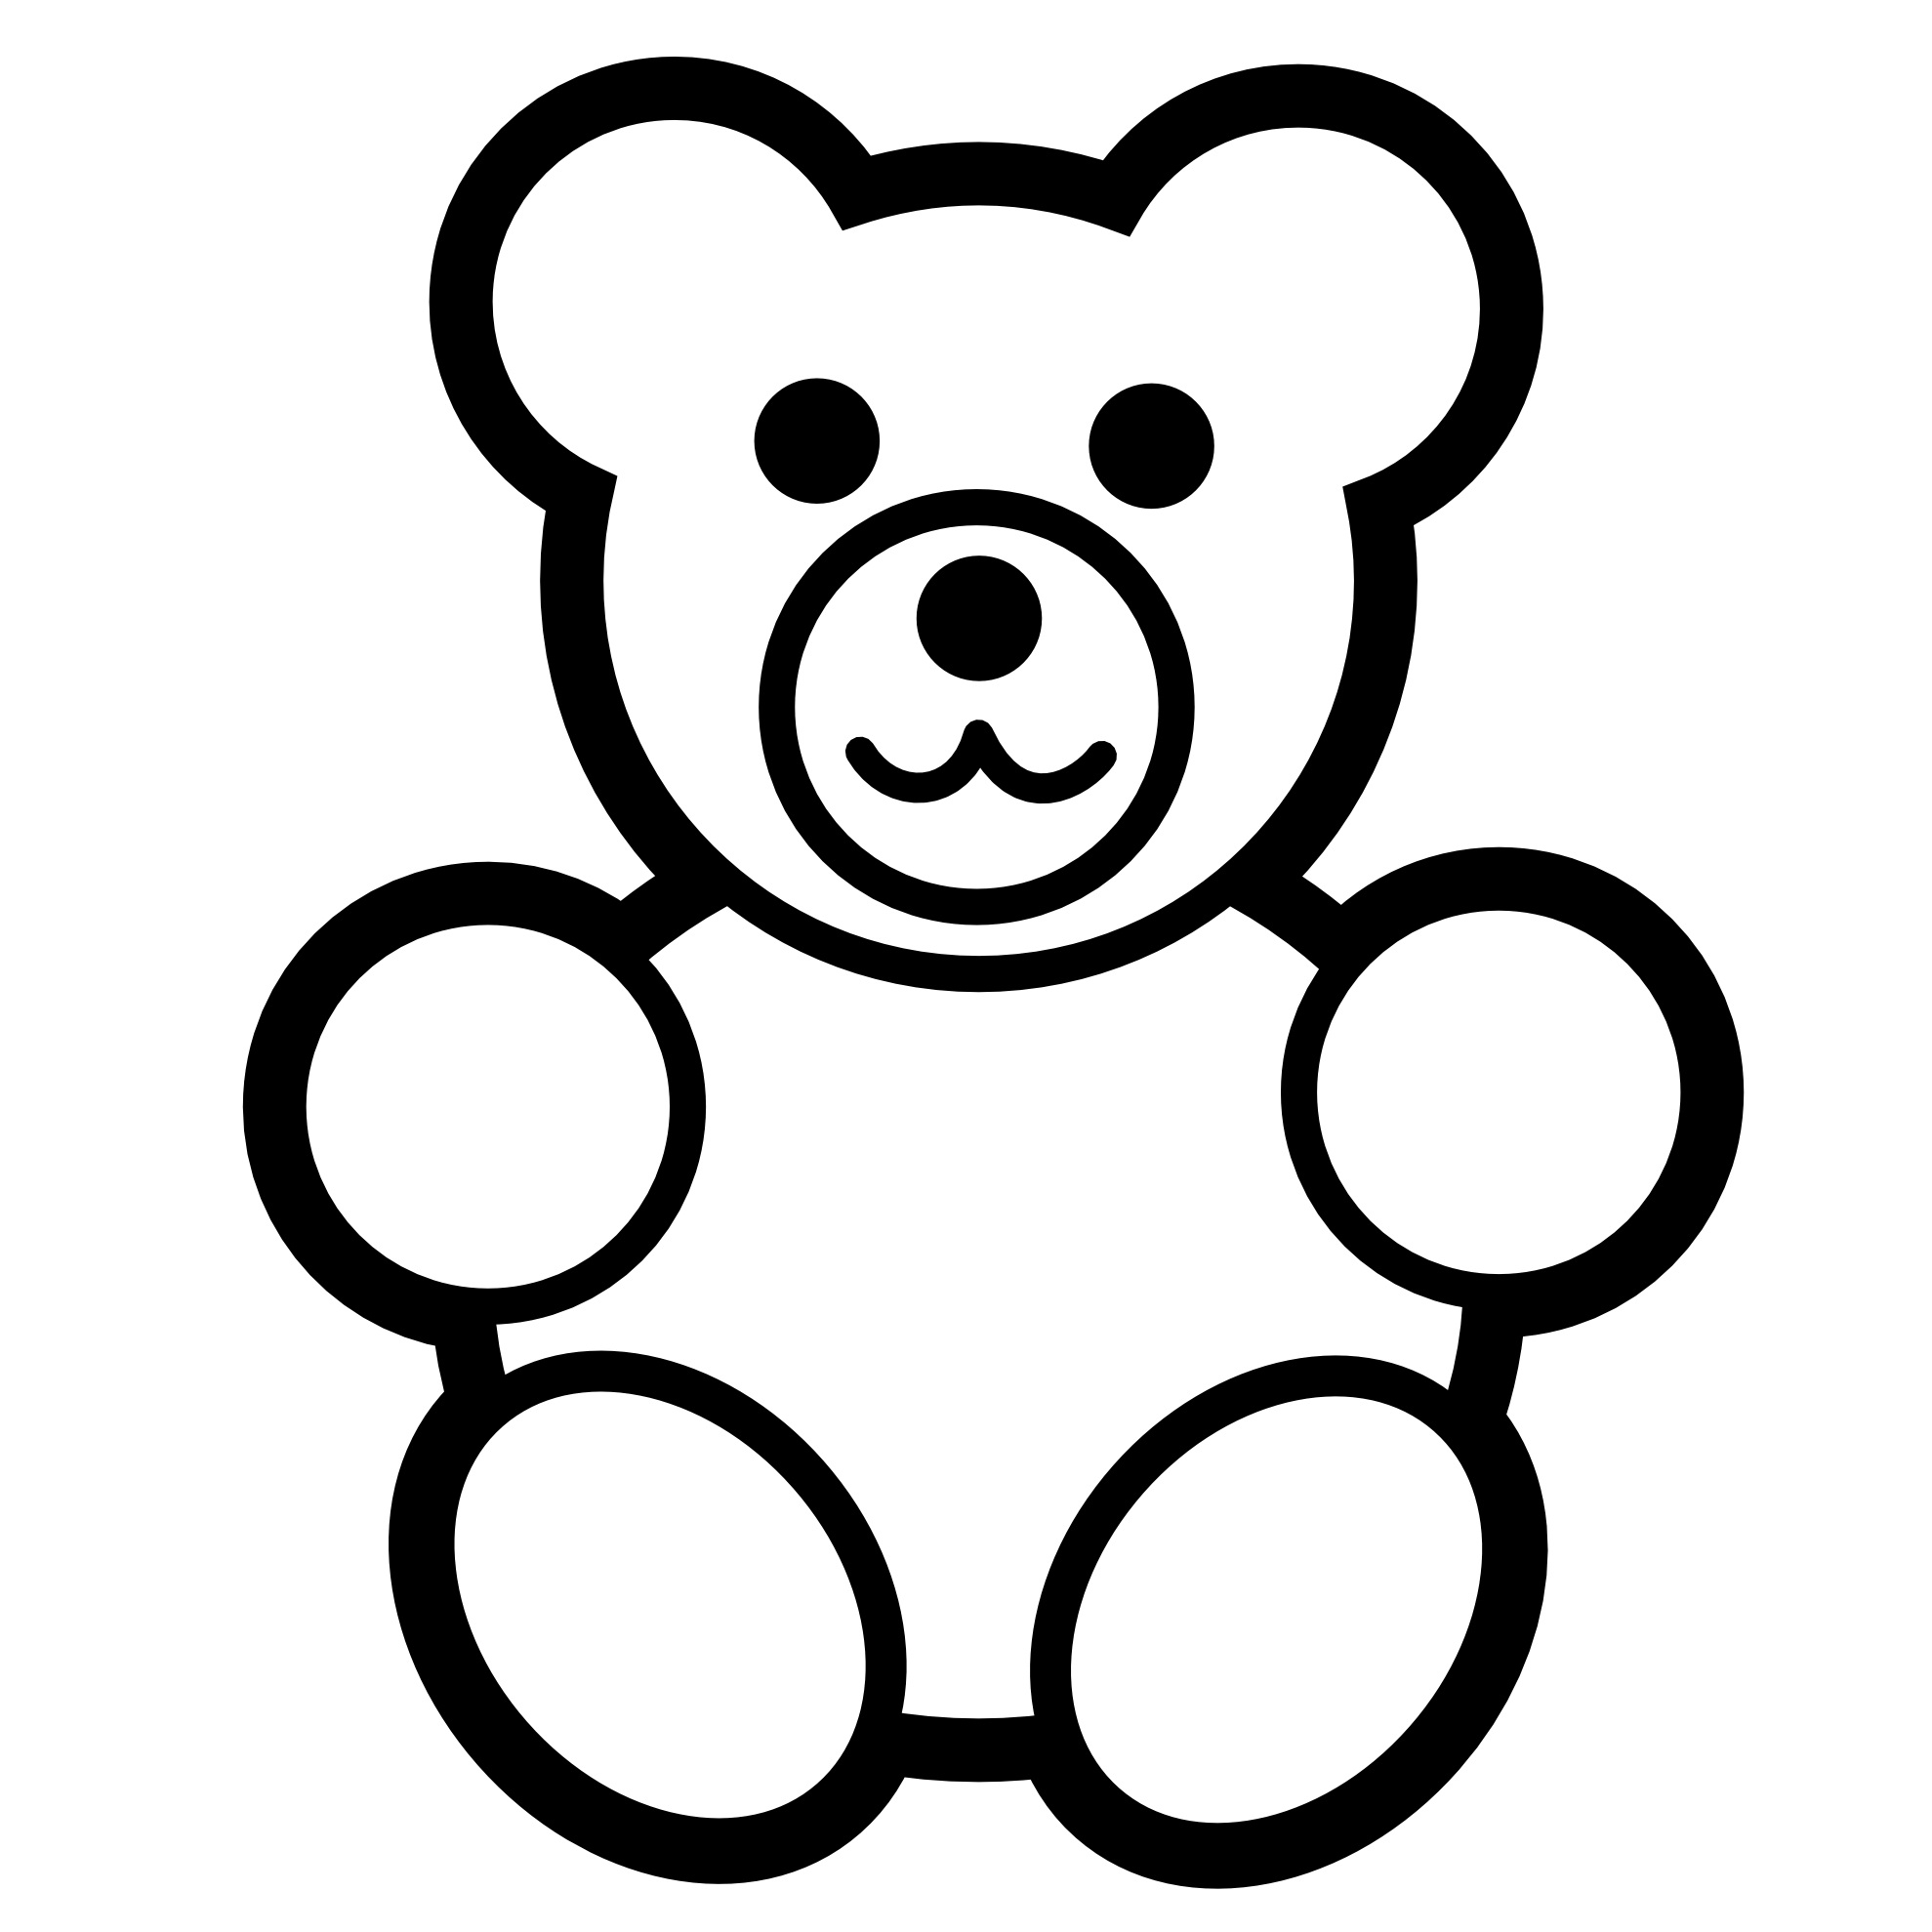 Teddy Bear Coloring Pages Free Printable Teddy Bear Coloring Pages For Kids Birijus Com